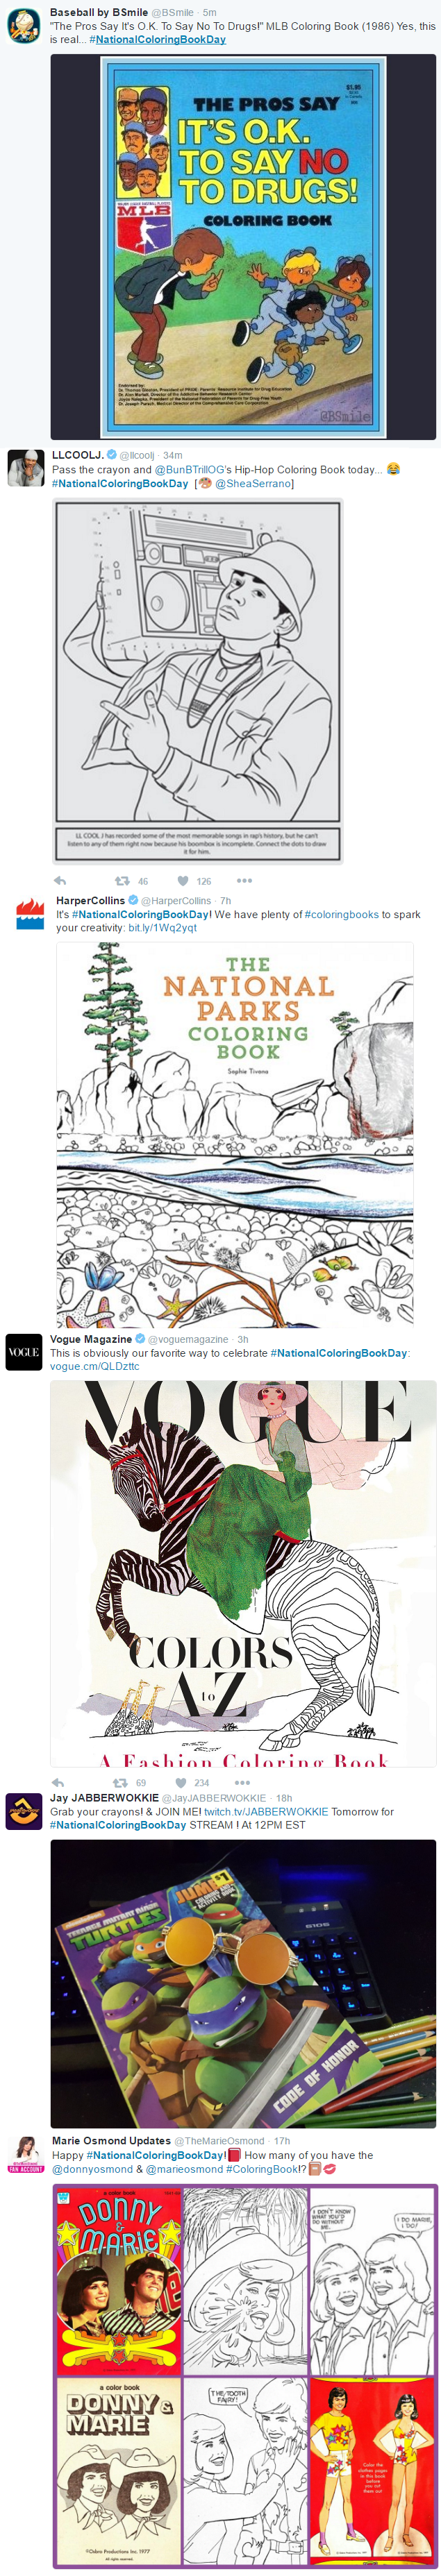 National Coloring Book Day Coloring Fun Cartoons Twitter Trending